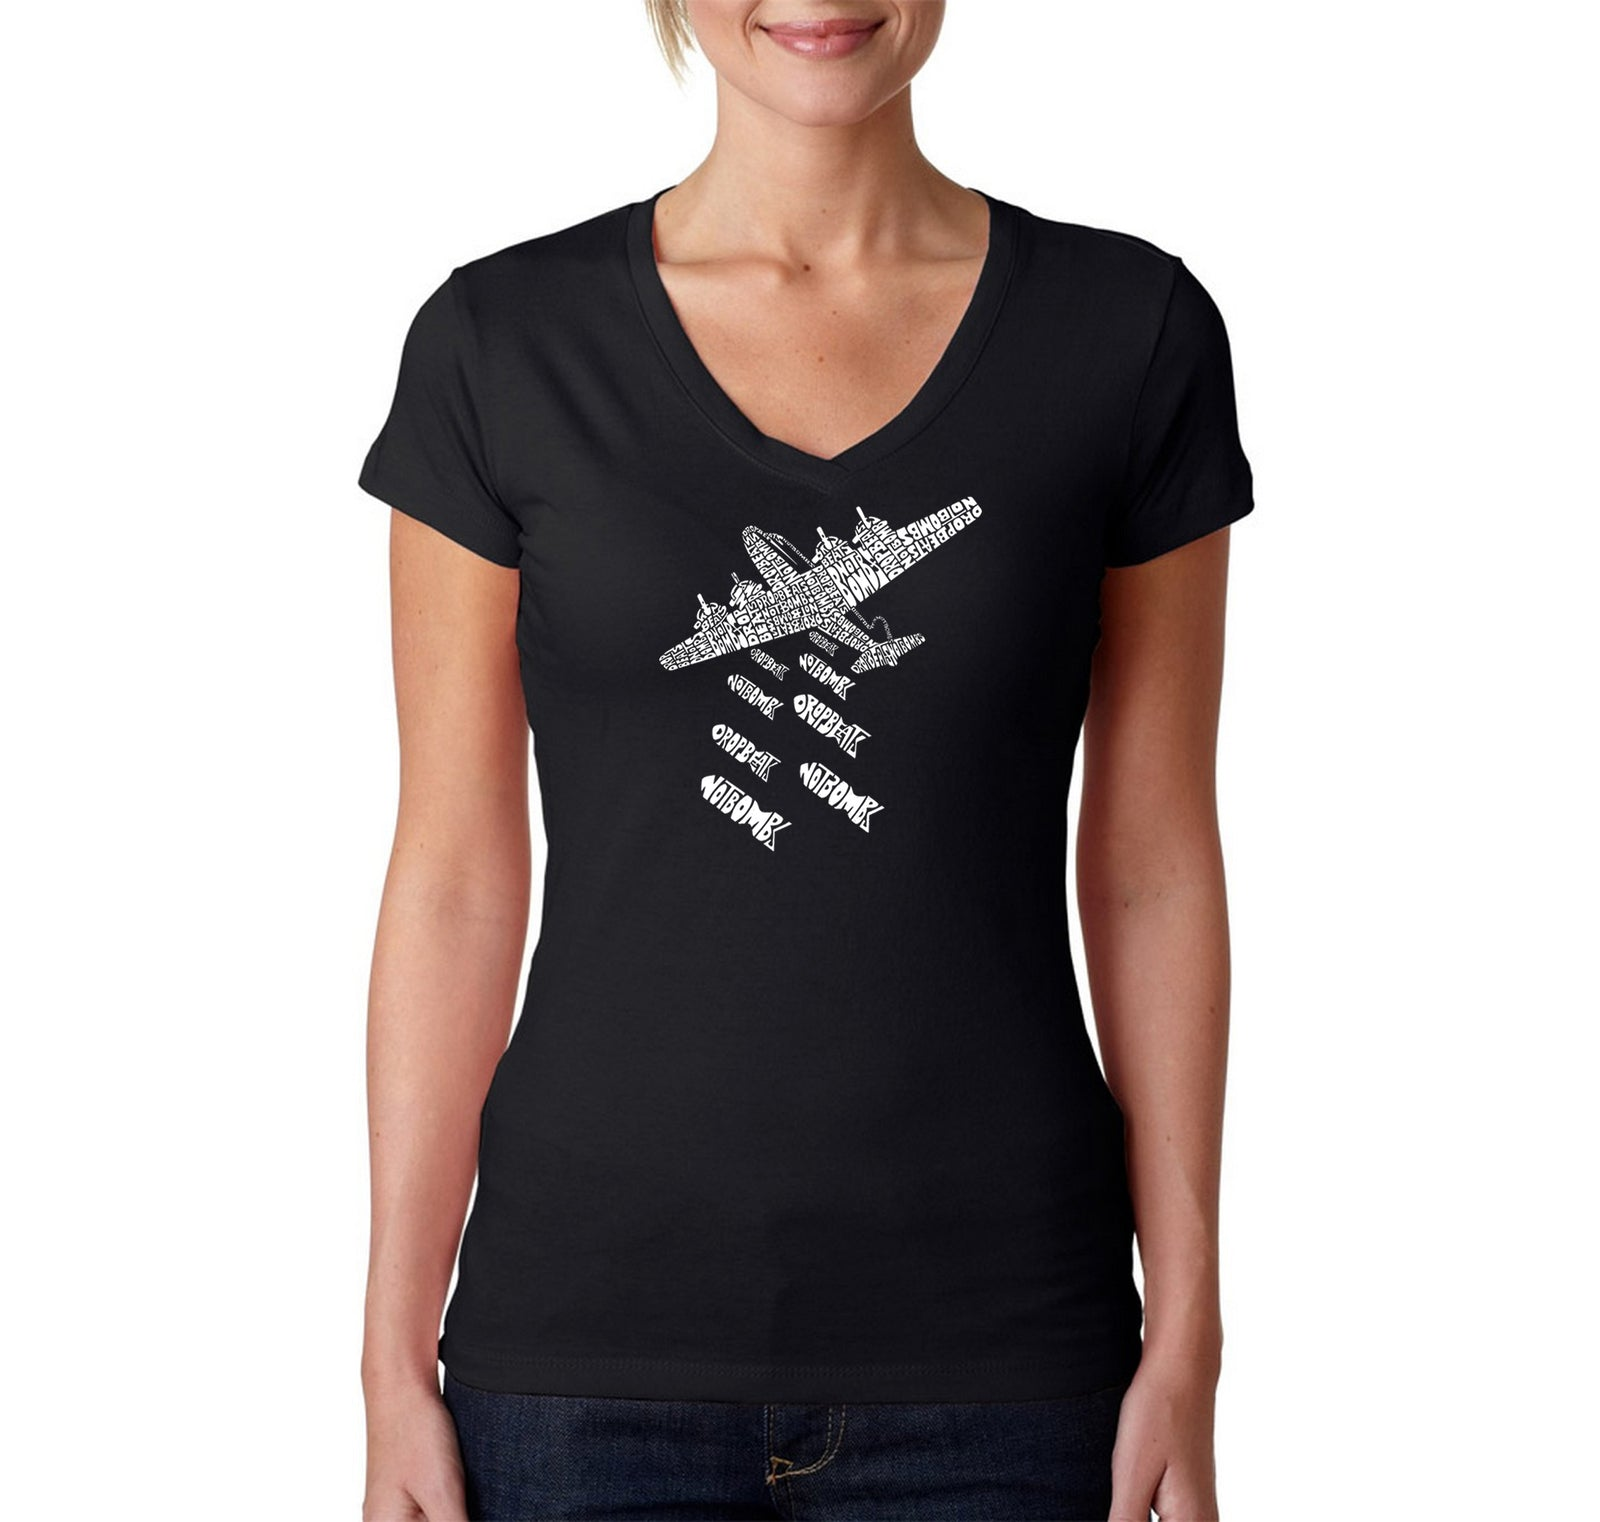 Women's V-Neck T-Shirt - DROP BEATS NOT BOMBS